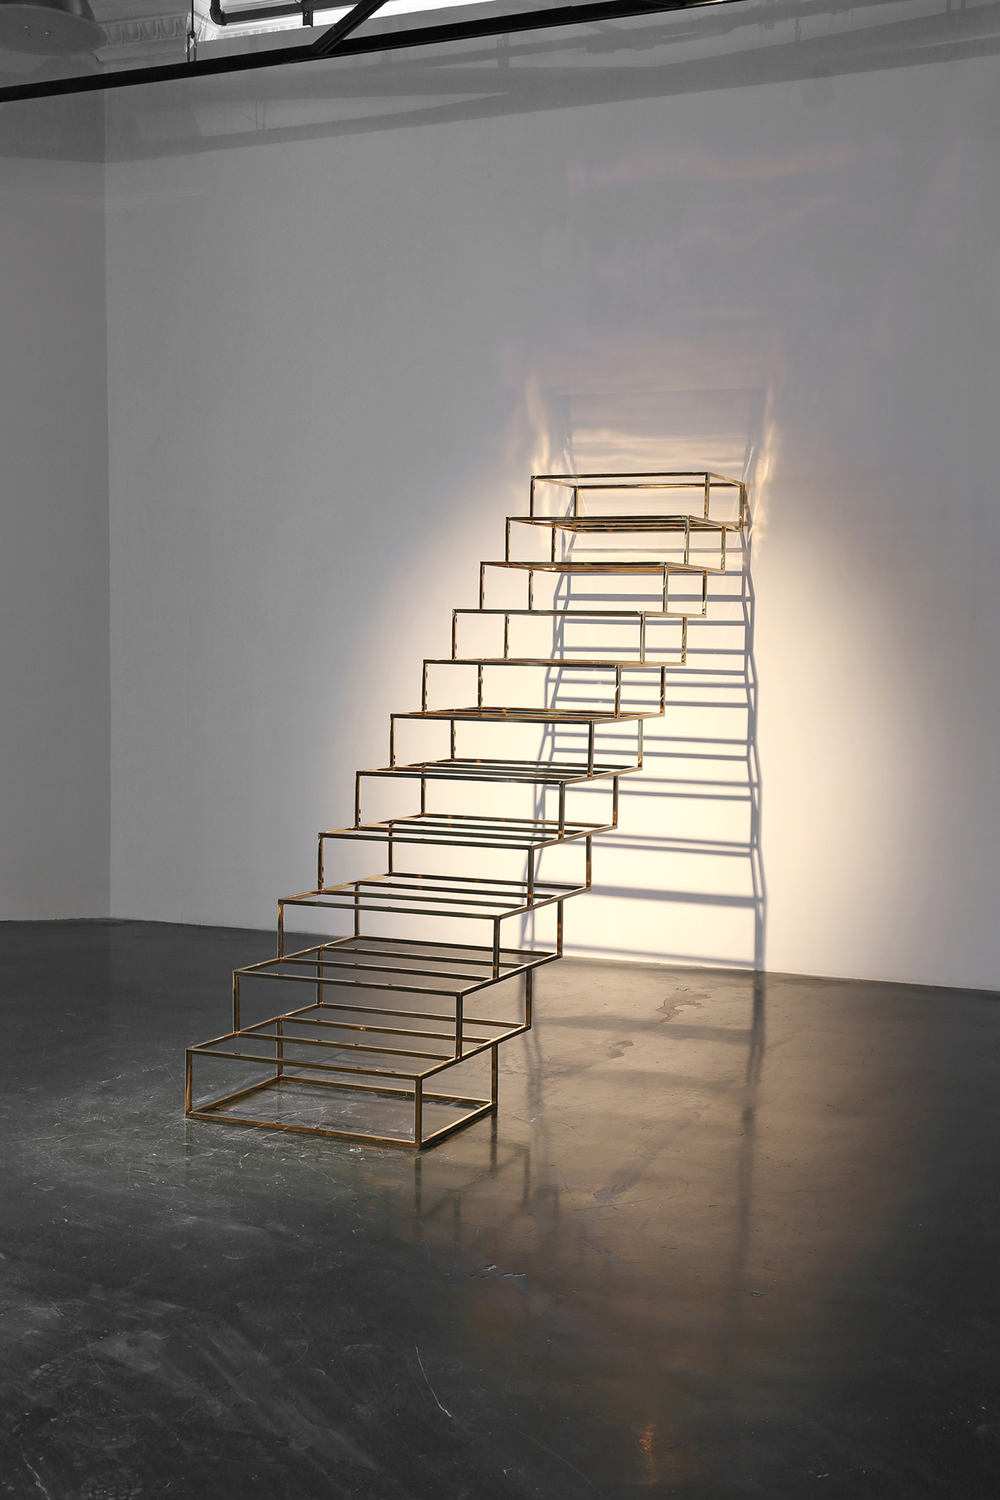 Gao Weigang 高伟刚, YES!, 2013, Stainless steel and titanium 不锈钢、钛金, 235 x 300 x 75 cm